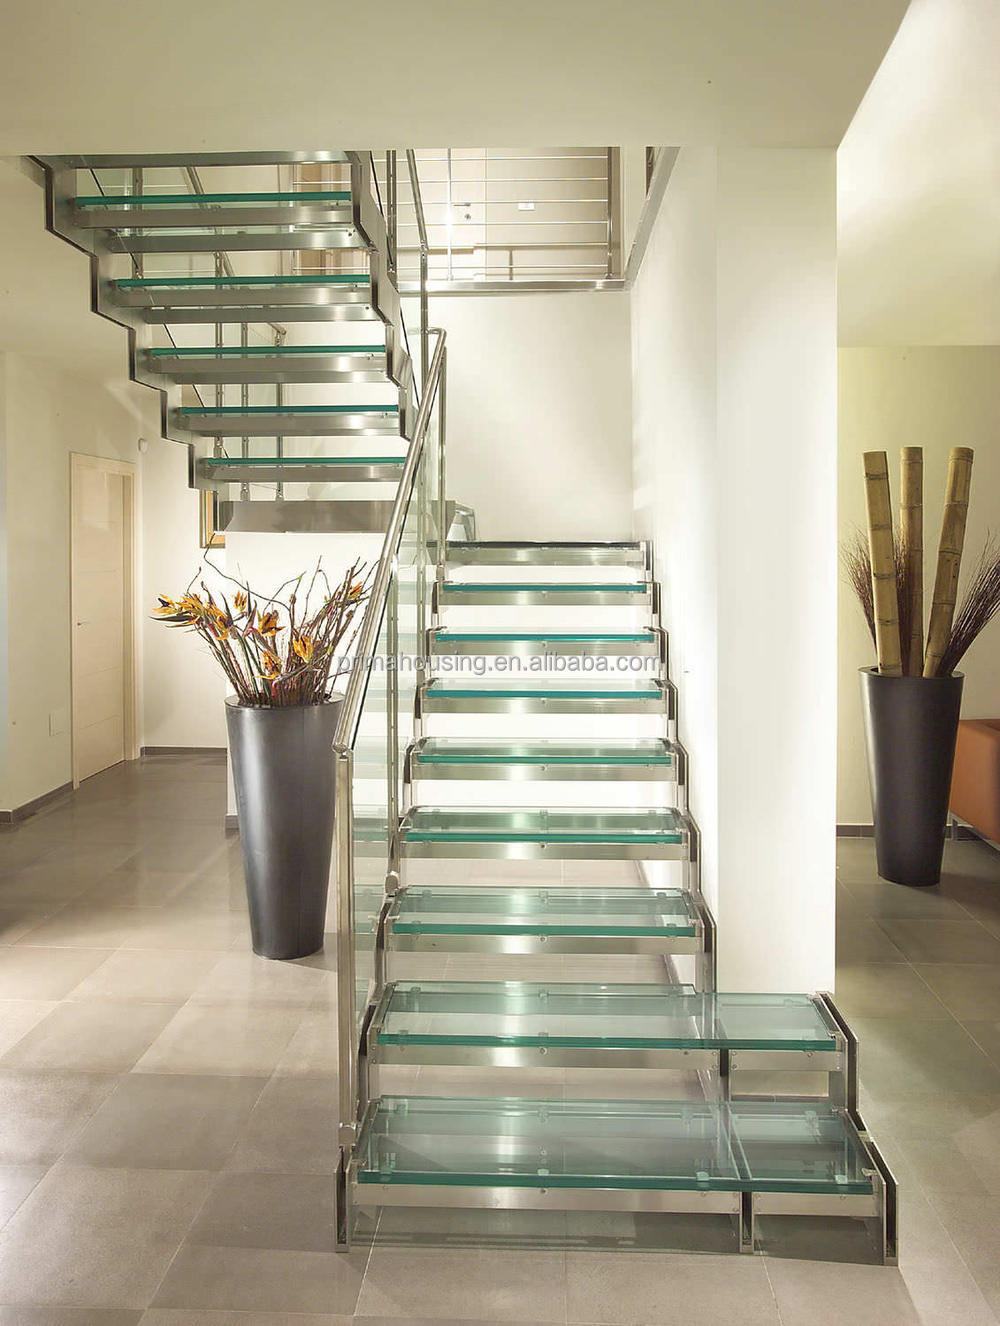 Prefabricated Glass Floating Stairs Manufacturer Buy